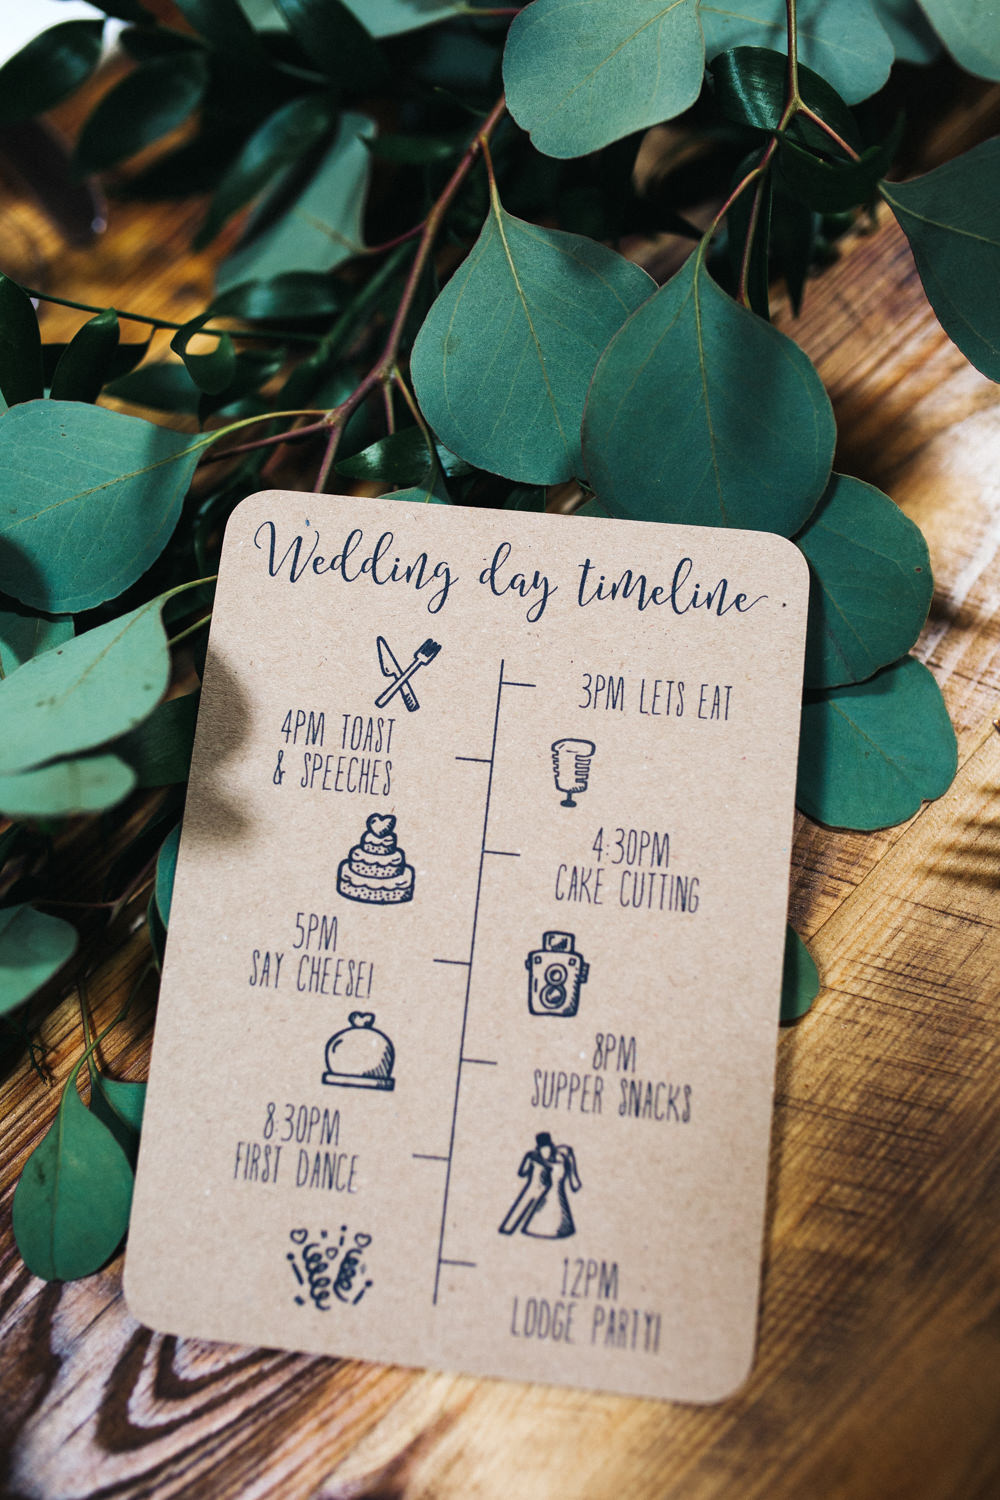 Kraft Brown Paper Stationery Invite Invitation Greenery Twine Timeline Wray's Barn Whinstone View Wedding Sally T Photography